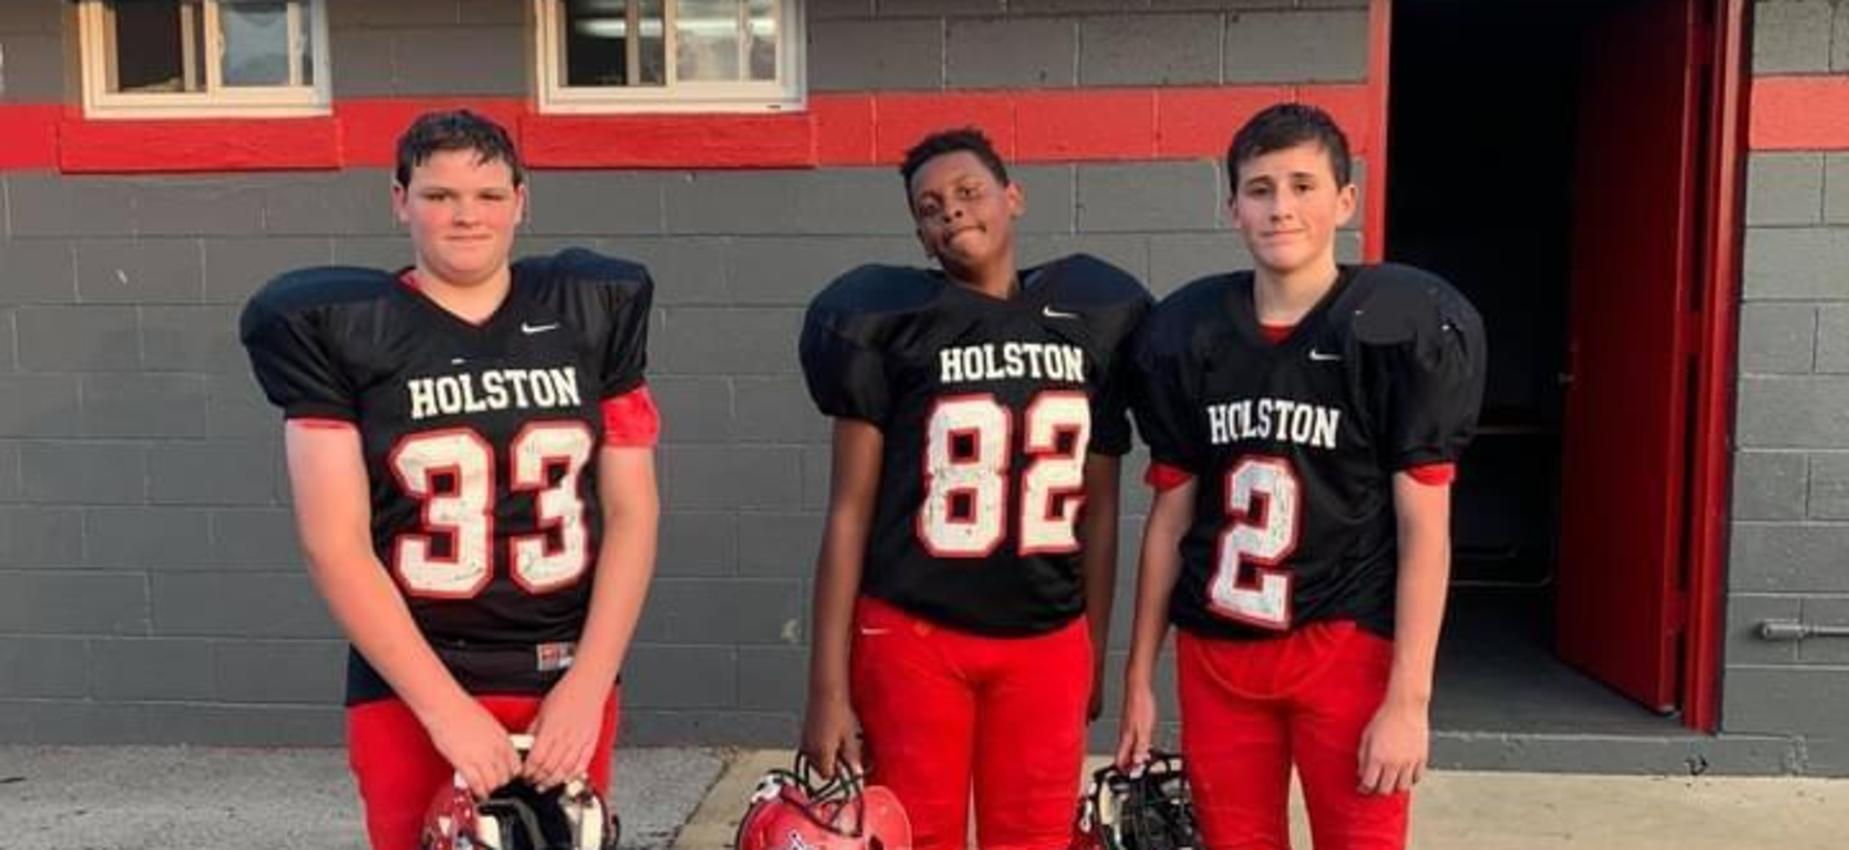 Football players pose outside a field house.